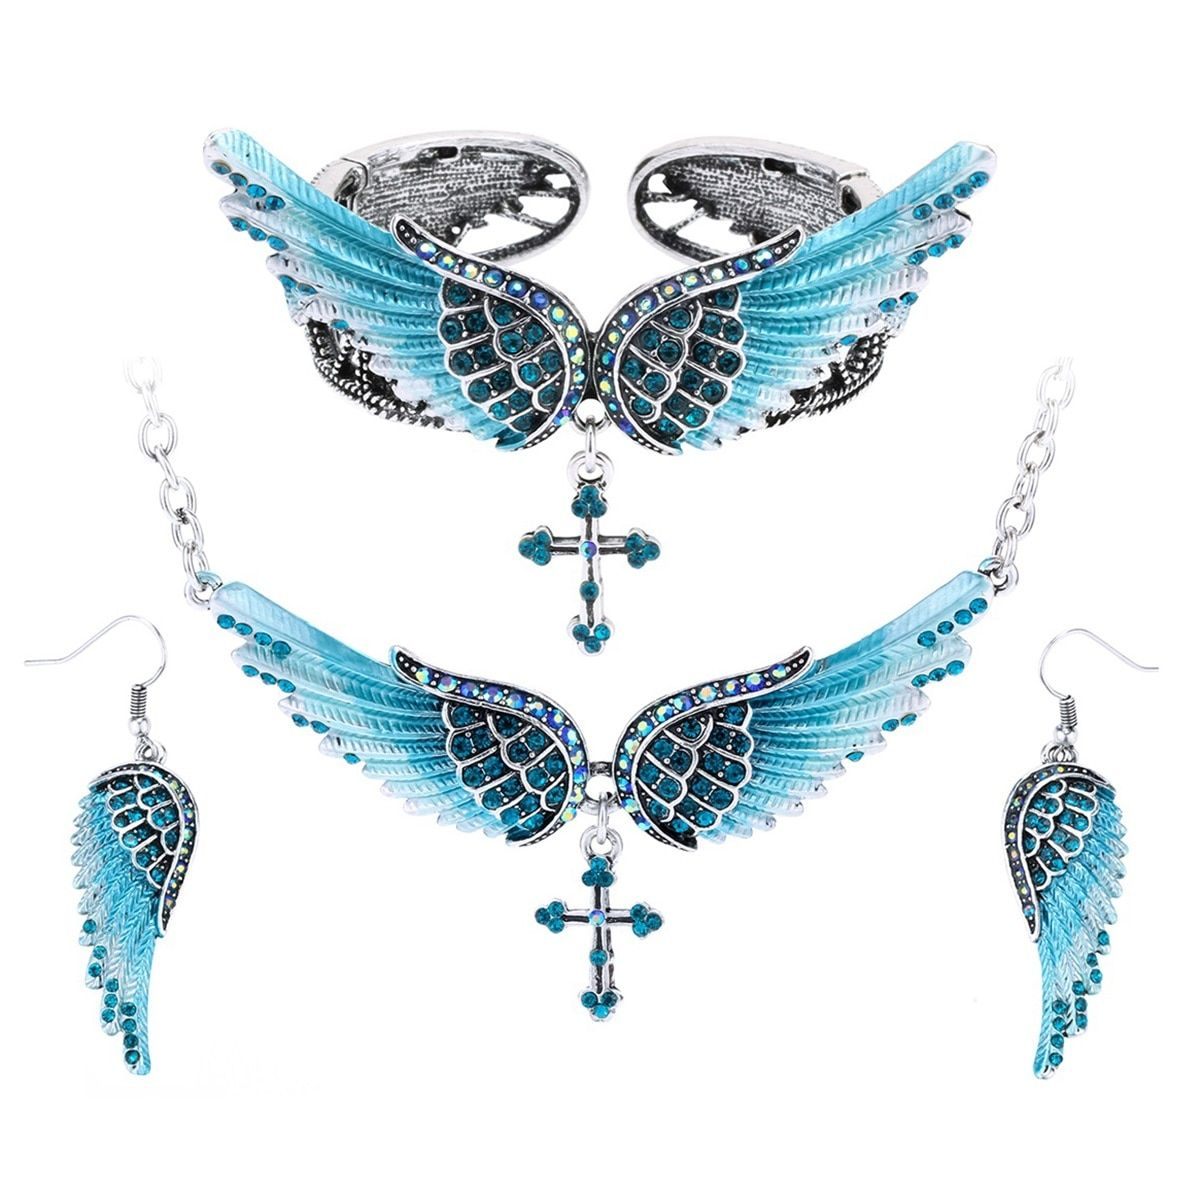 Angel wing cross necklace earrings bracelet sets women biker jewelry birthday gifts  women her girlfriend dropshipping SBENC01